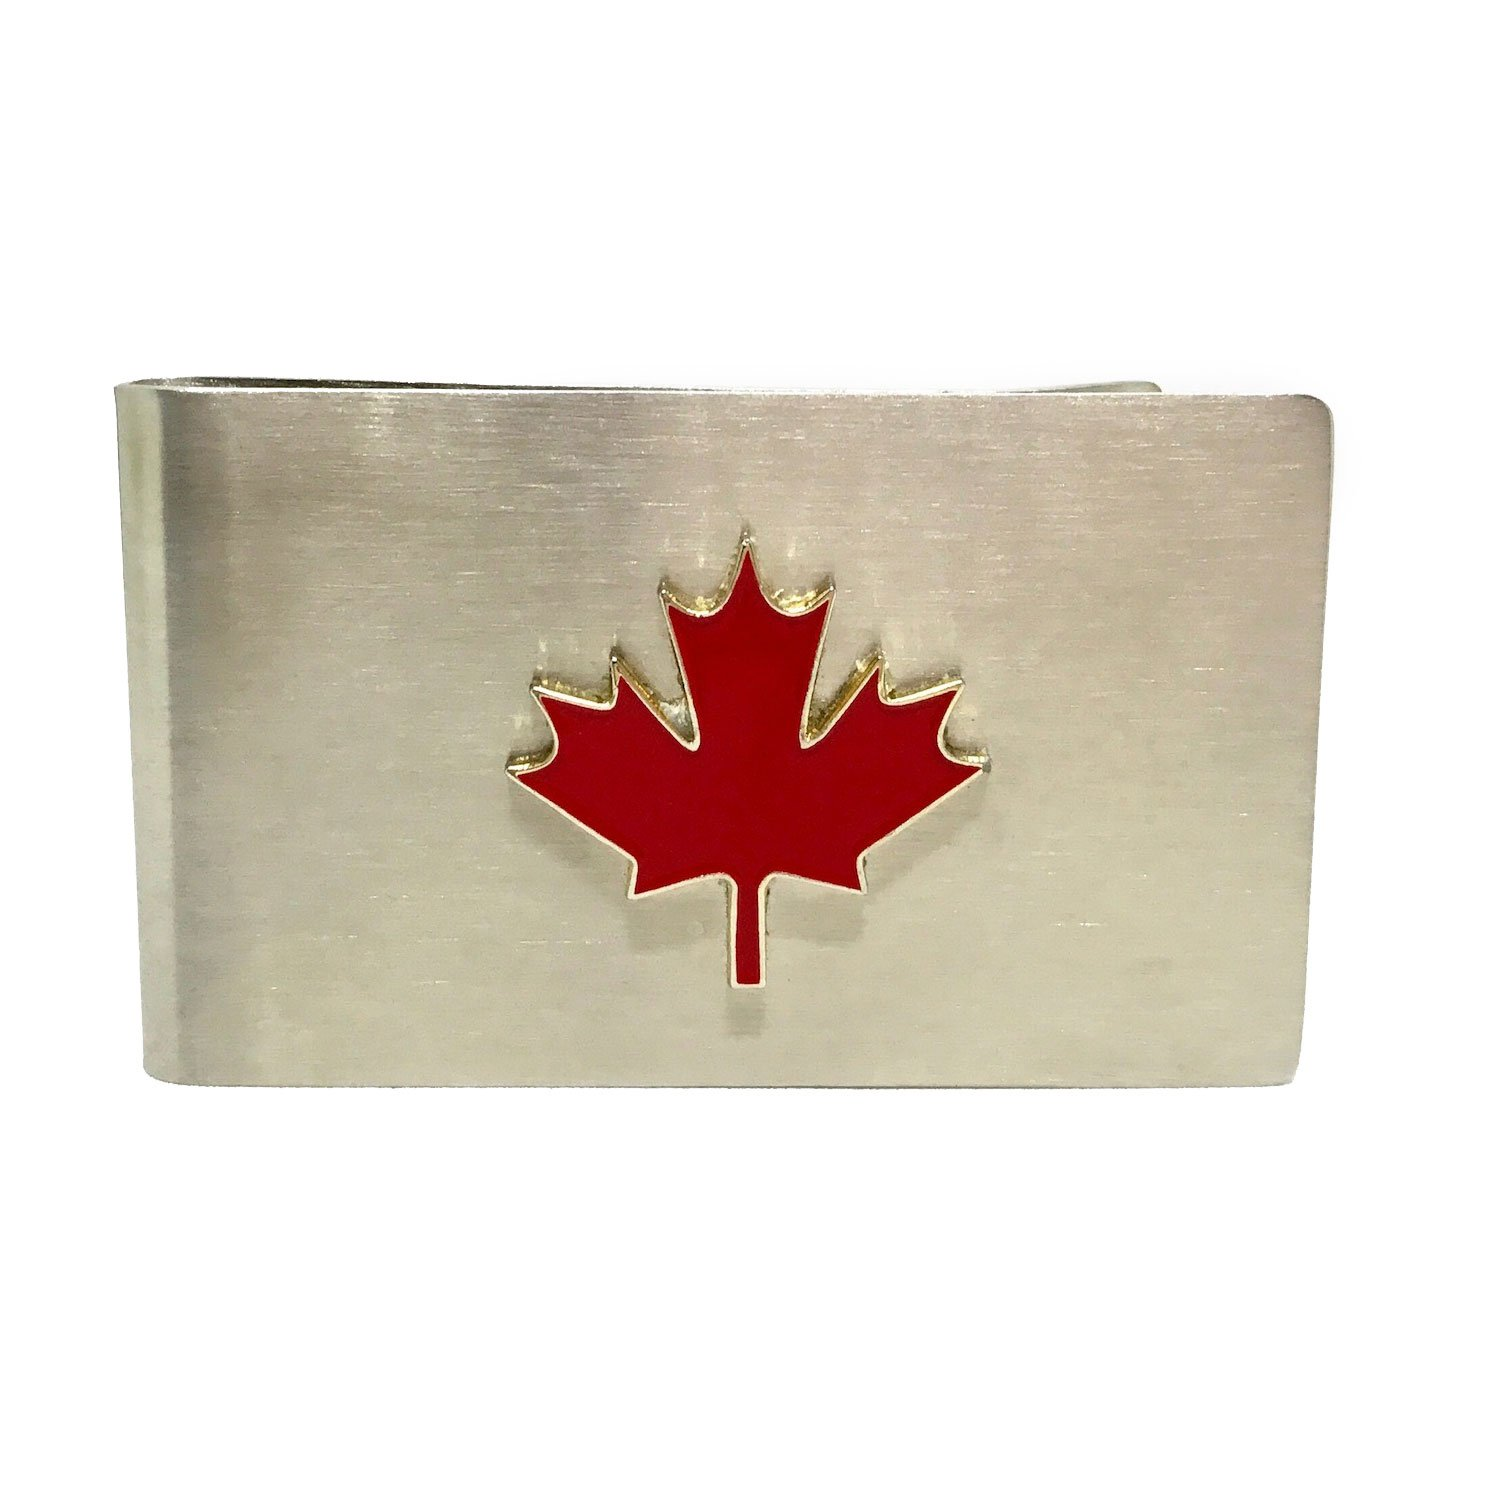 Custom Designed French-Fold Money Clip in Brushed Stainless Steel Cigar Cutters by Jim Money Clip